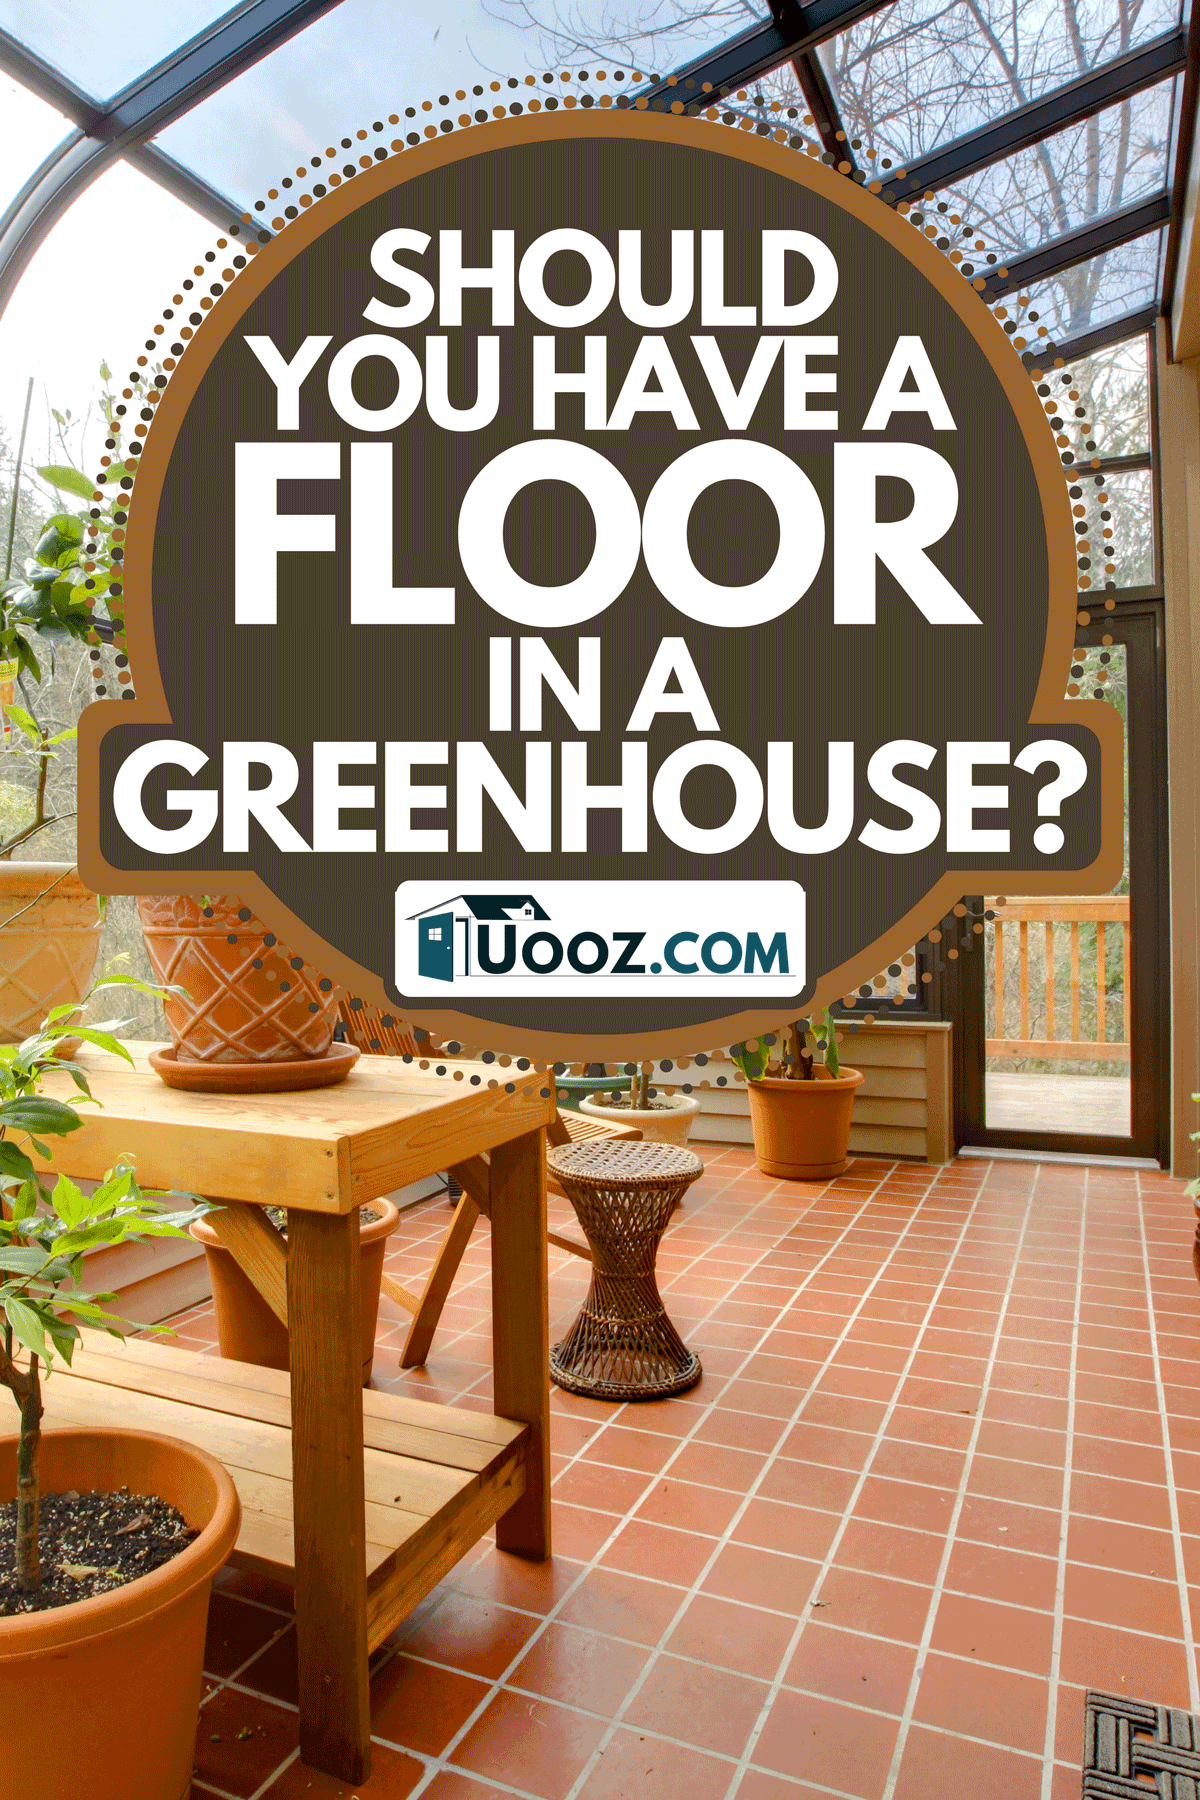 A private home green house with tiled floor, Should You Have A Floor In A Greenhouse?